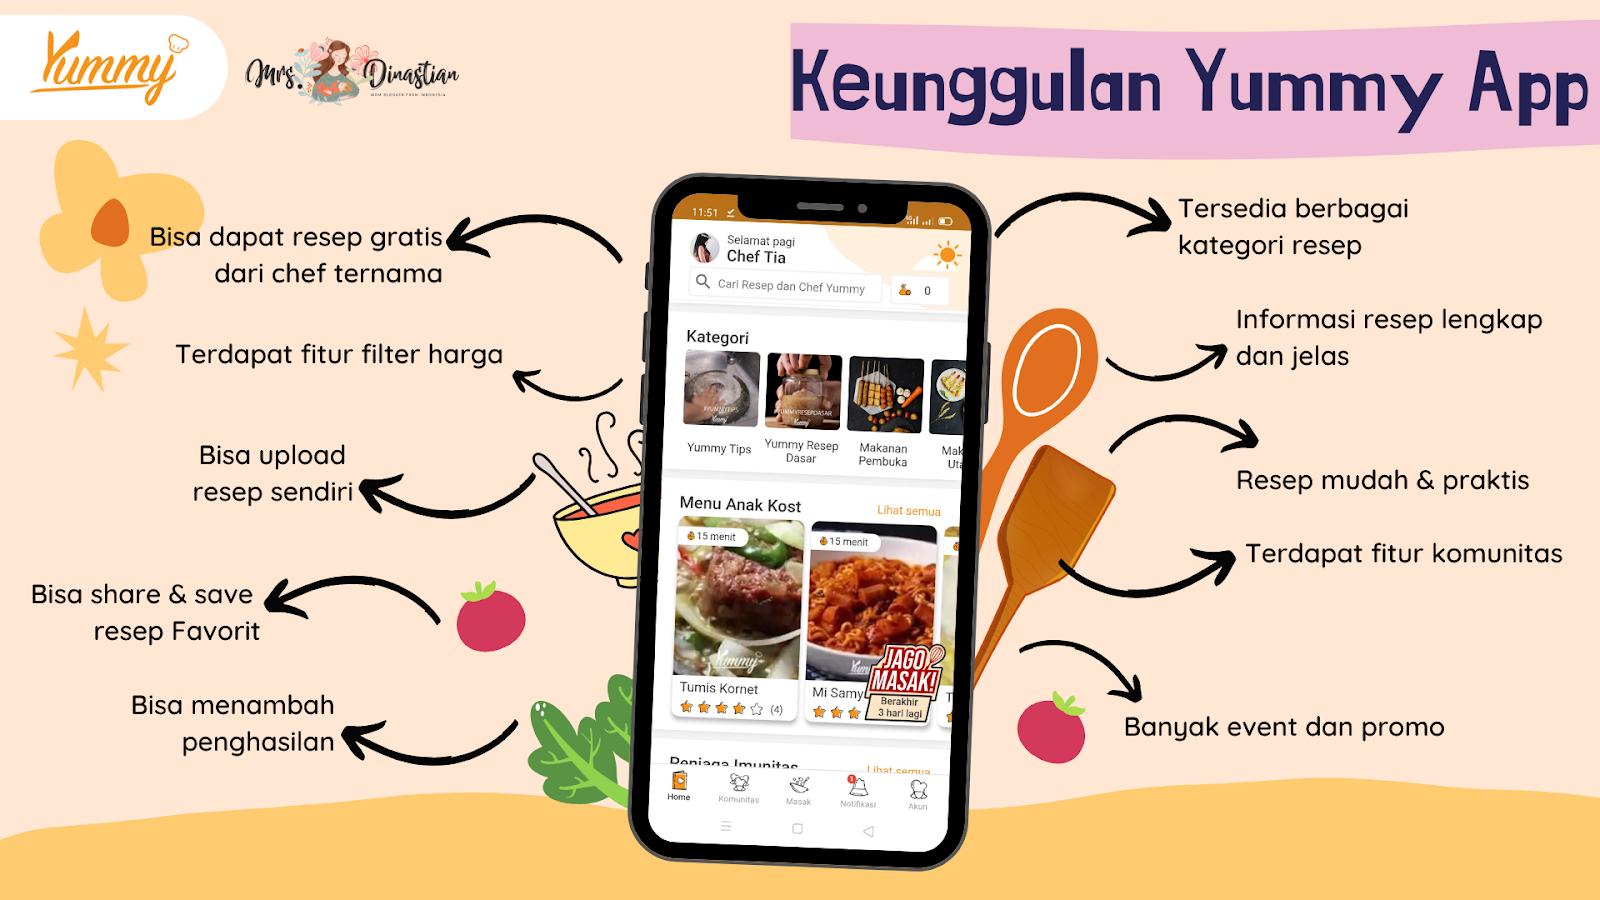 Keunggulan Yummy App